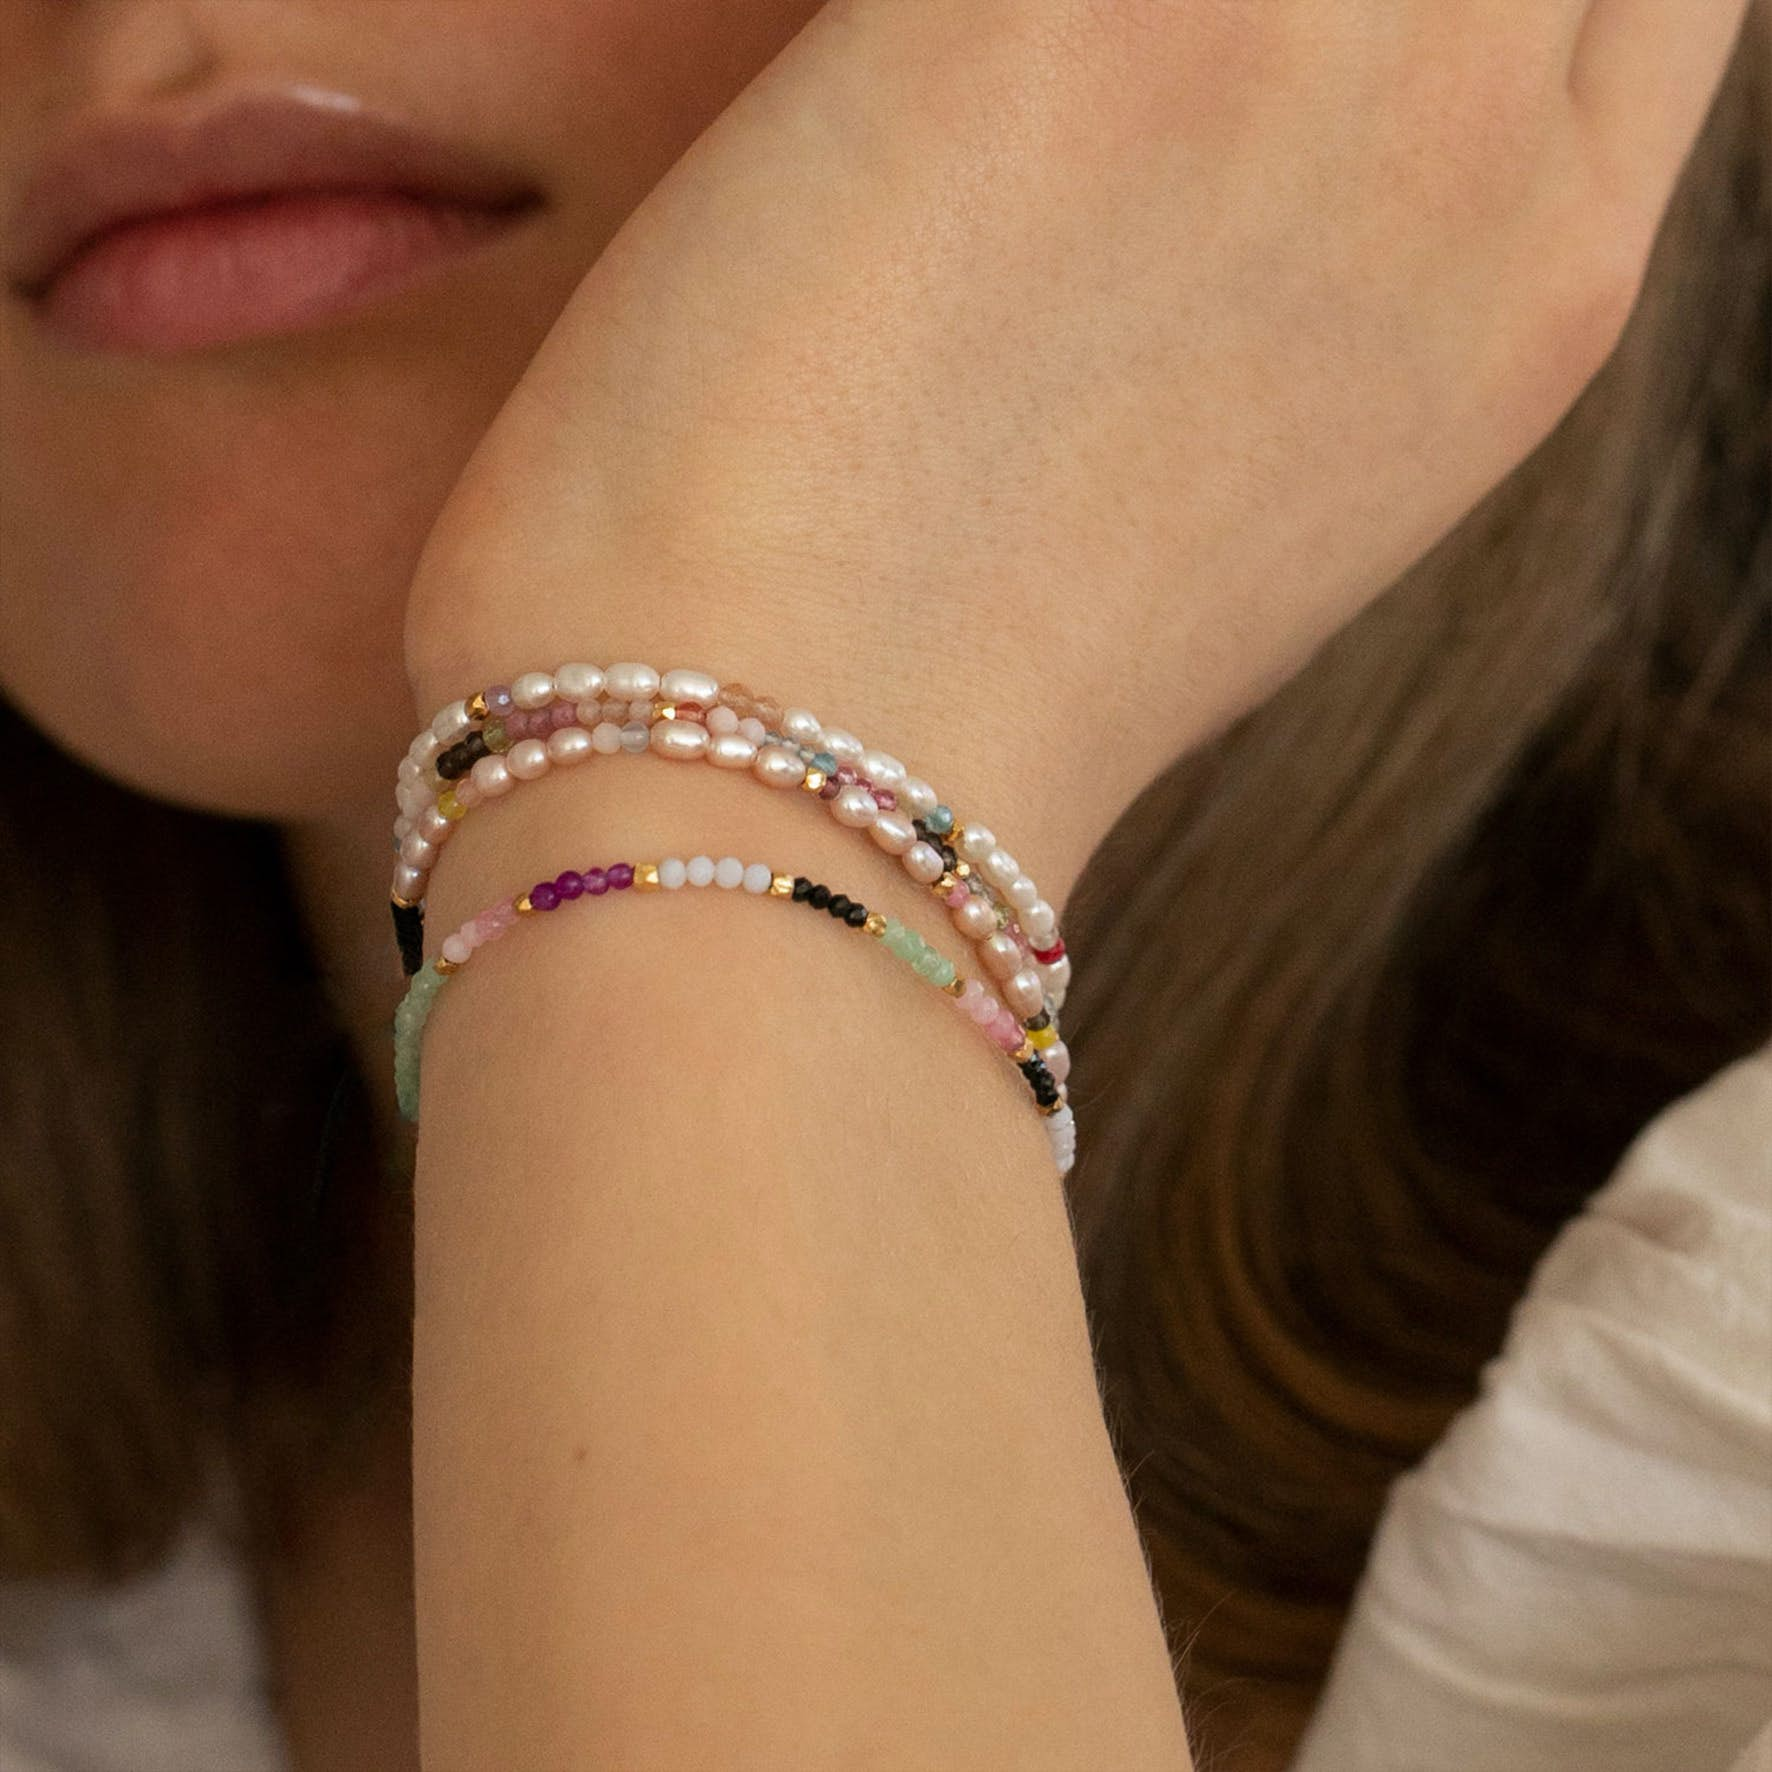 Confetti Pearl Bracelet With Pink Pastel Mix With Pink Ribbon fra STINE A Jewelry i Nylon